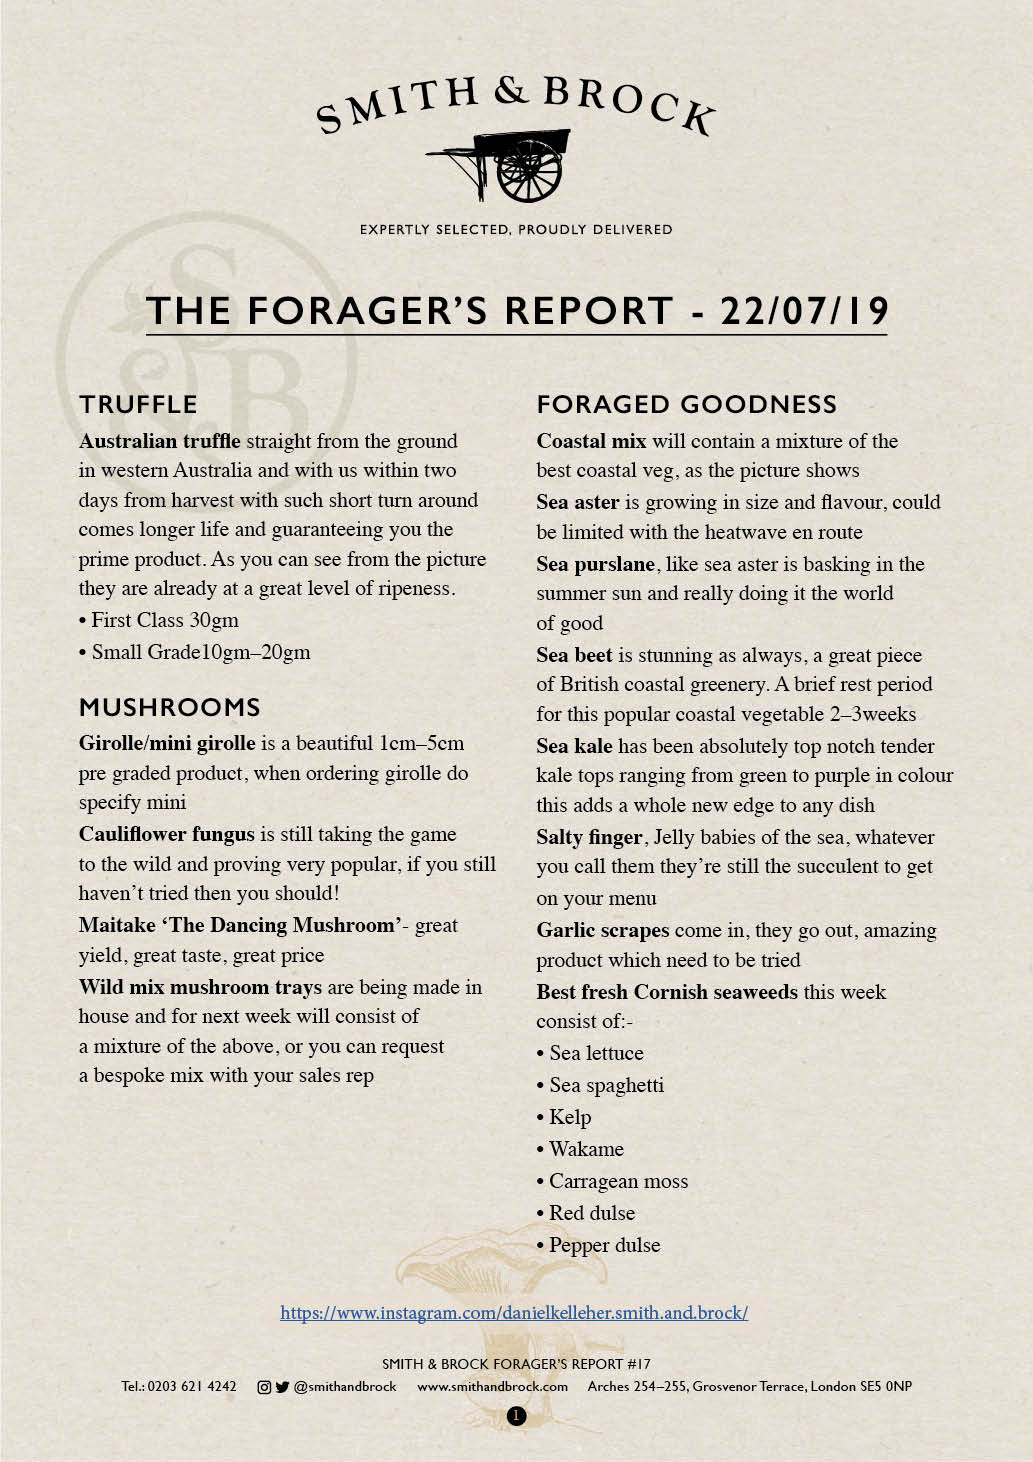 Smith&Brock Foraged Products Report 22 July 2019 17